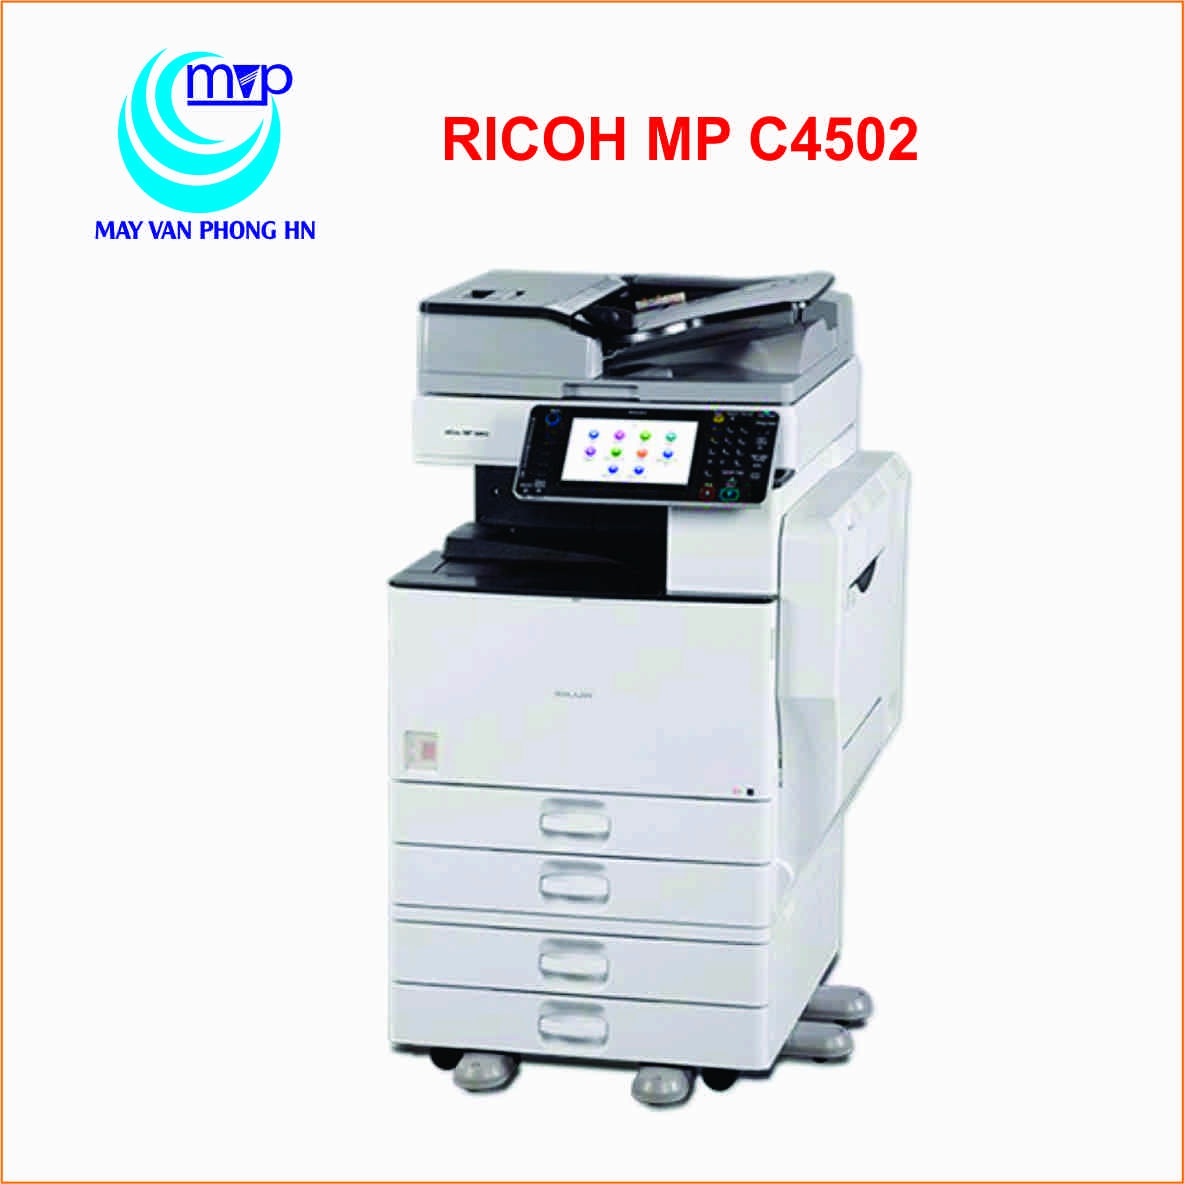 RICOH MP C4502